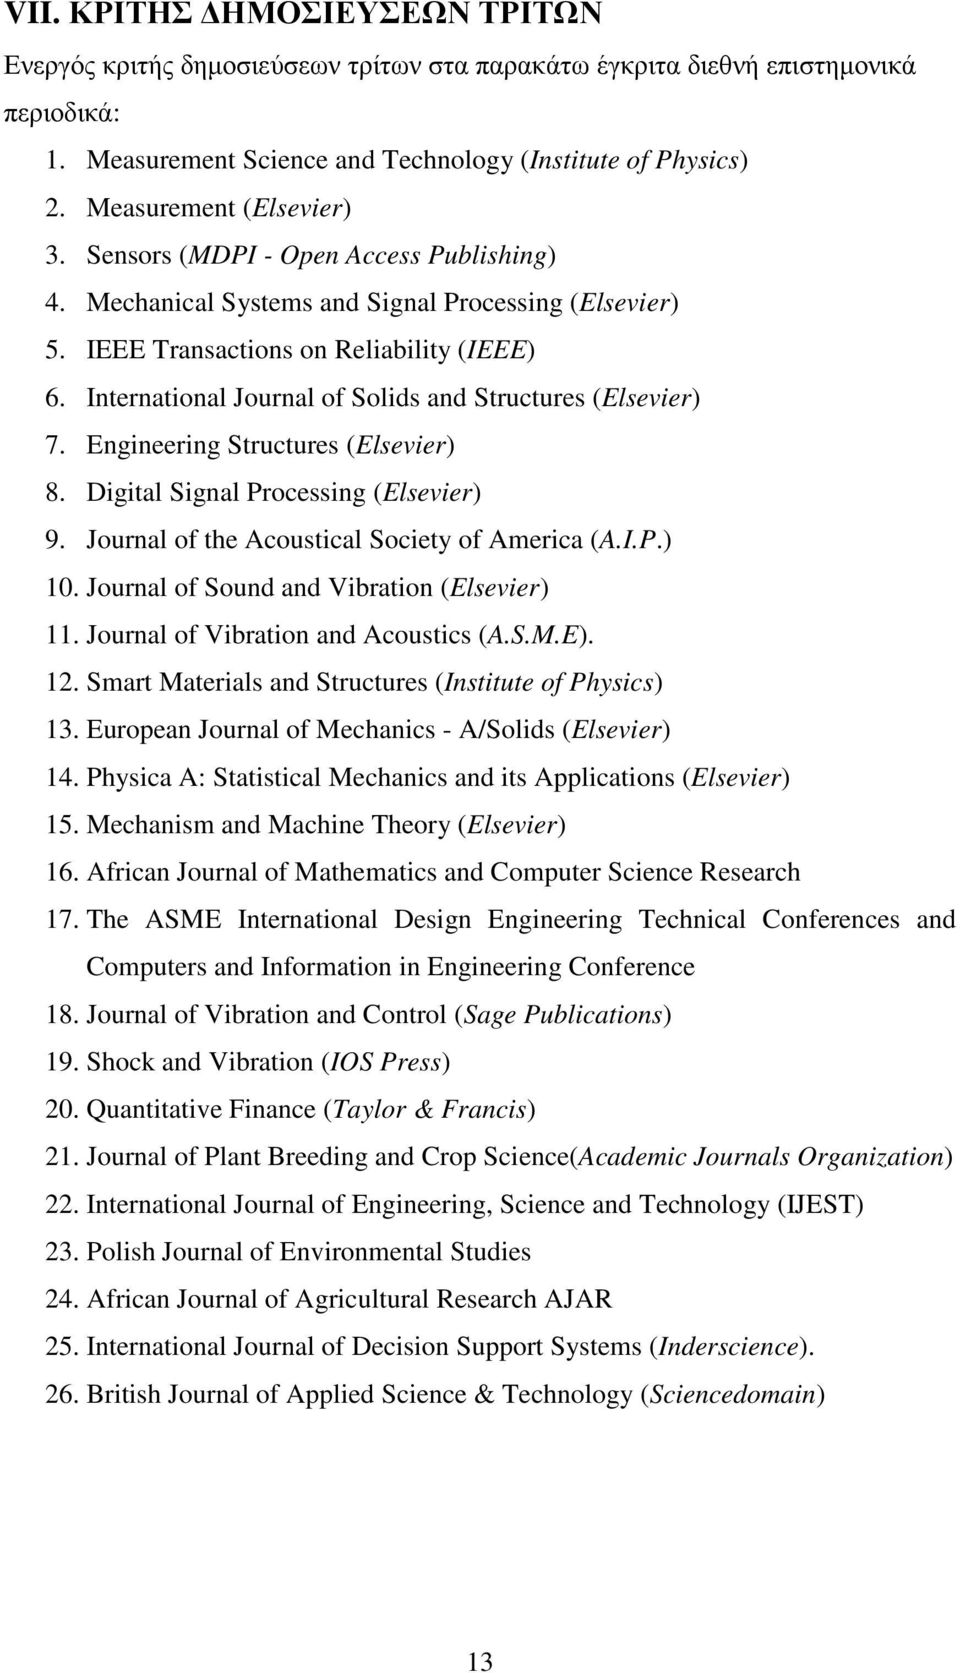 International Journal of Solids and Structures (Elsevier) 7. Engineering Structures (Elsevier) 8. Digital Signal Processing (Elsevier) 9. Journal of the Acoustical Society of America (A.I.P.) 10.